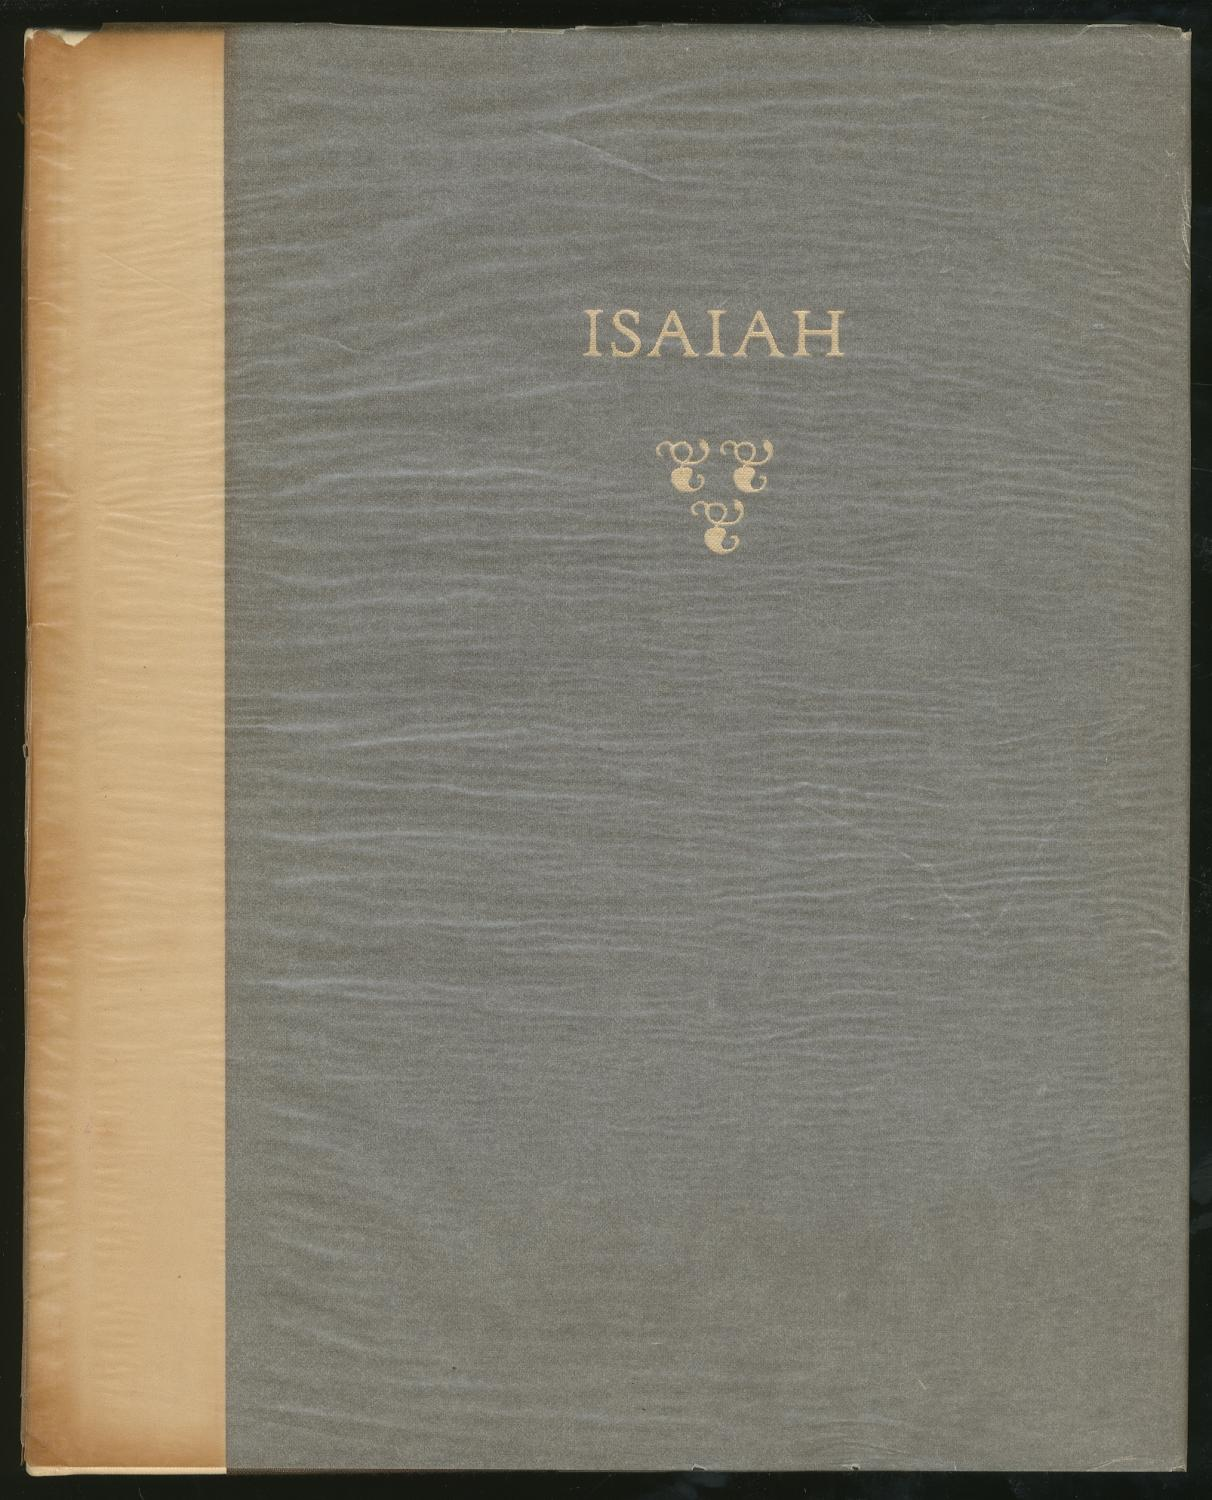 The Book of the Prophet Isaiah ISAIAH Near Fine